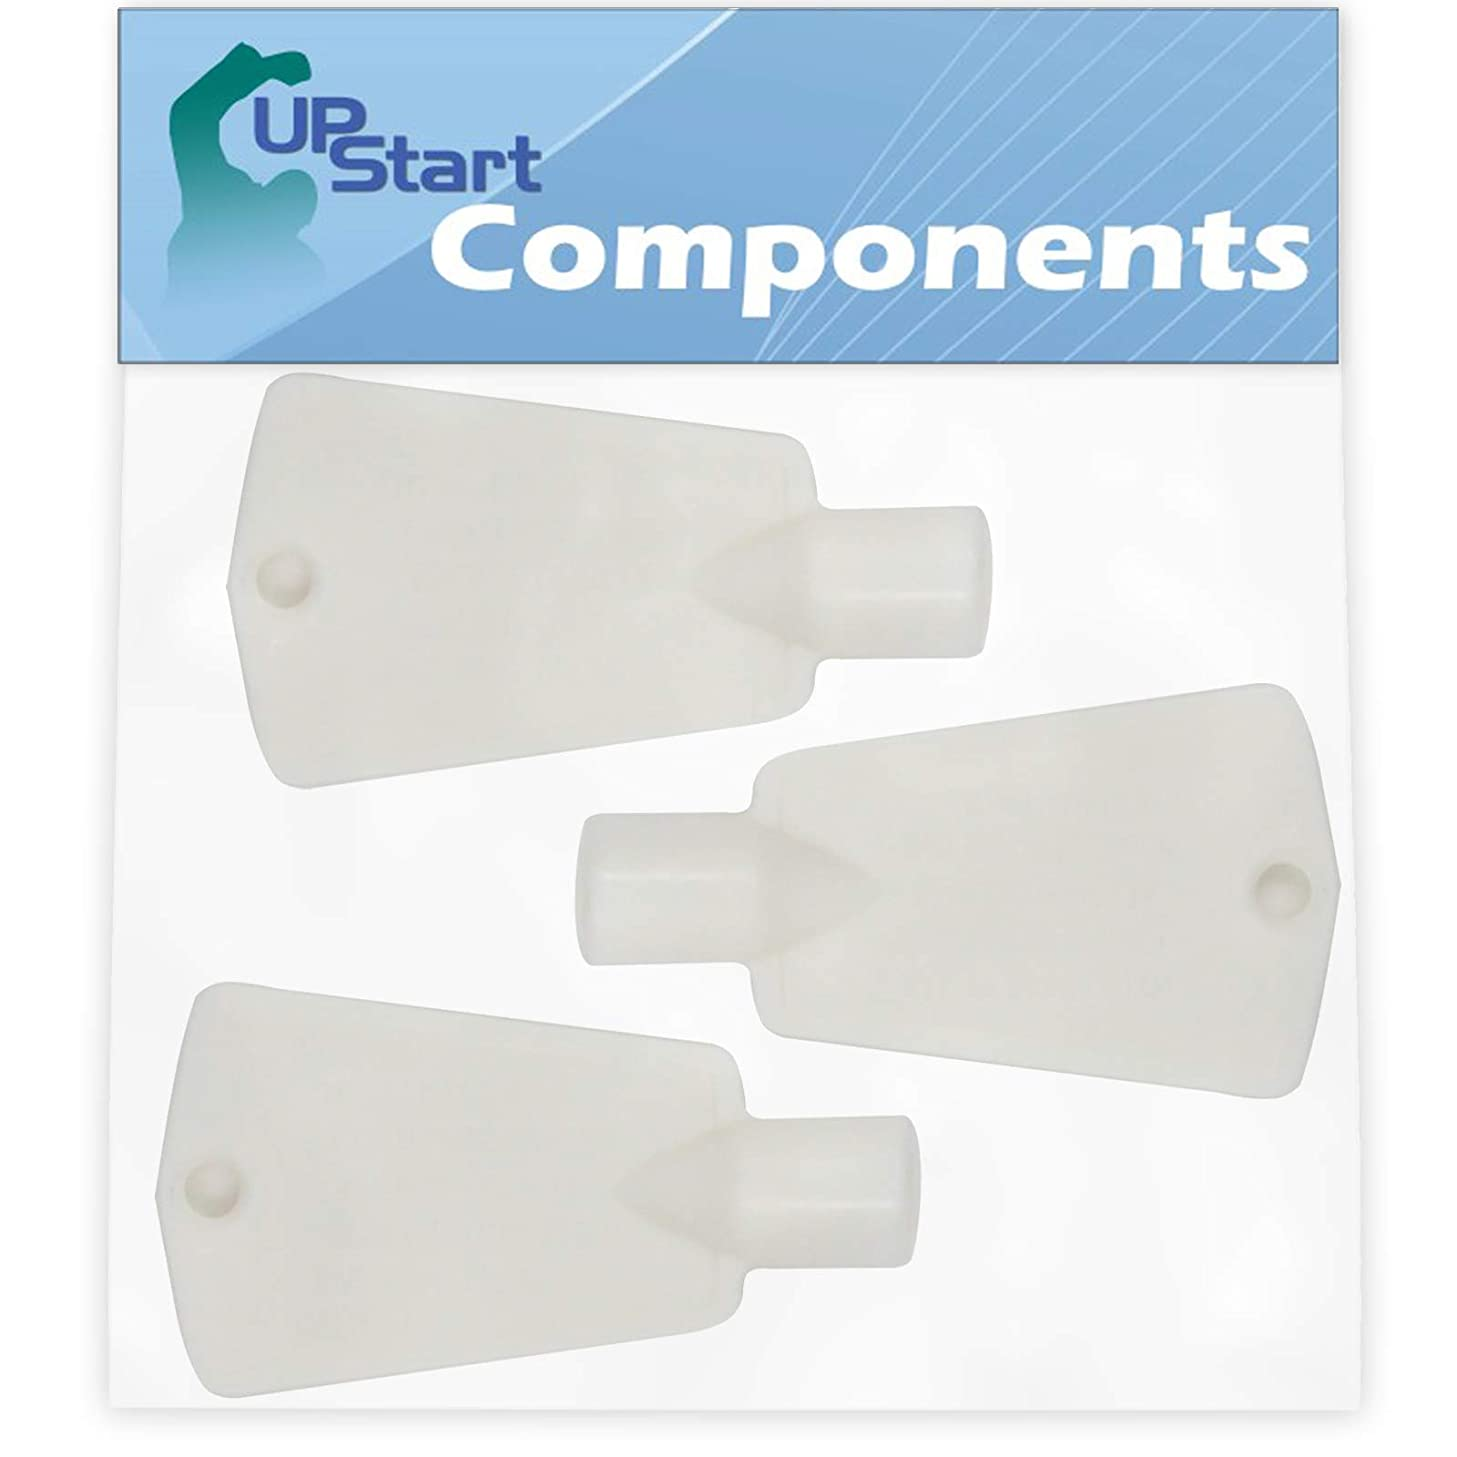 3-Pack 297147700 Freezer Door Key Replacement for Kenmore/Sears 25313911102 Freezer - Compatible with 297147700 Lock Key - UpStart Components Brand